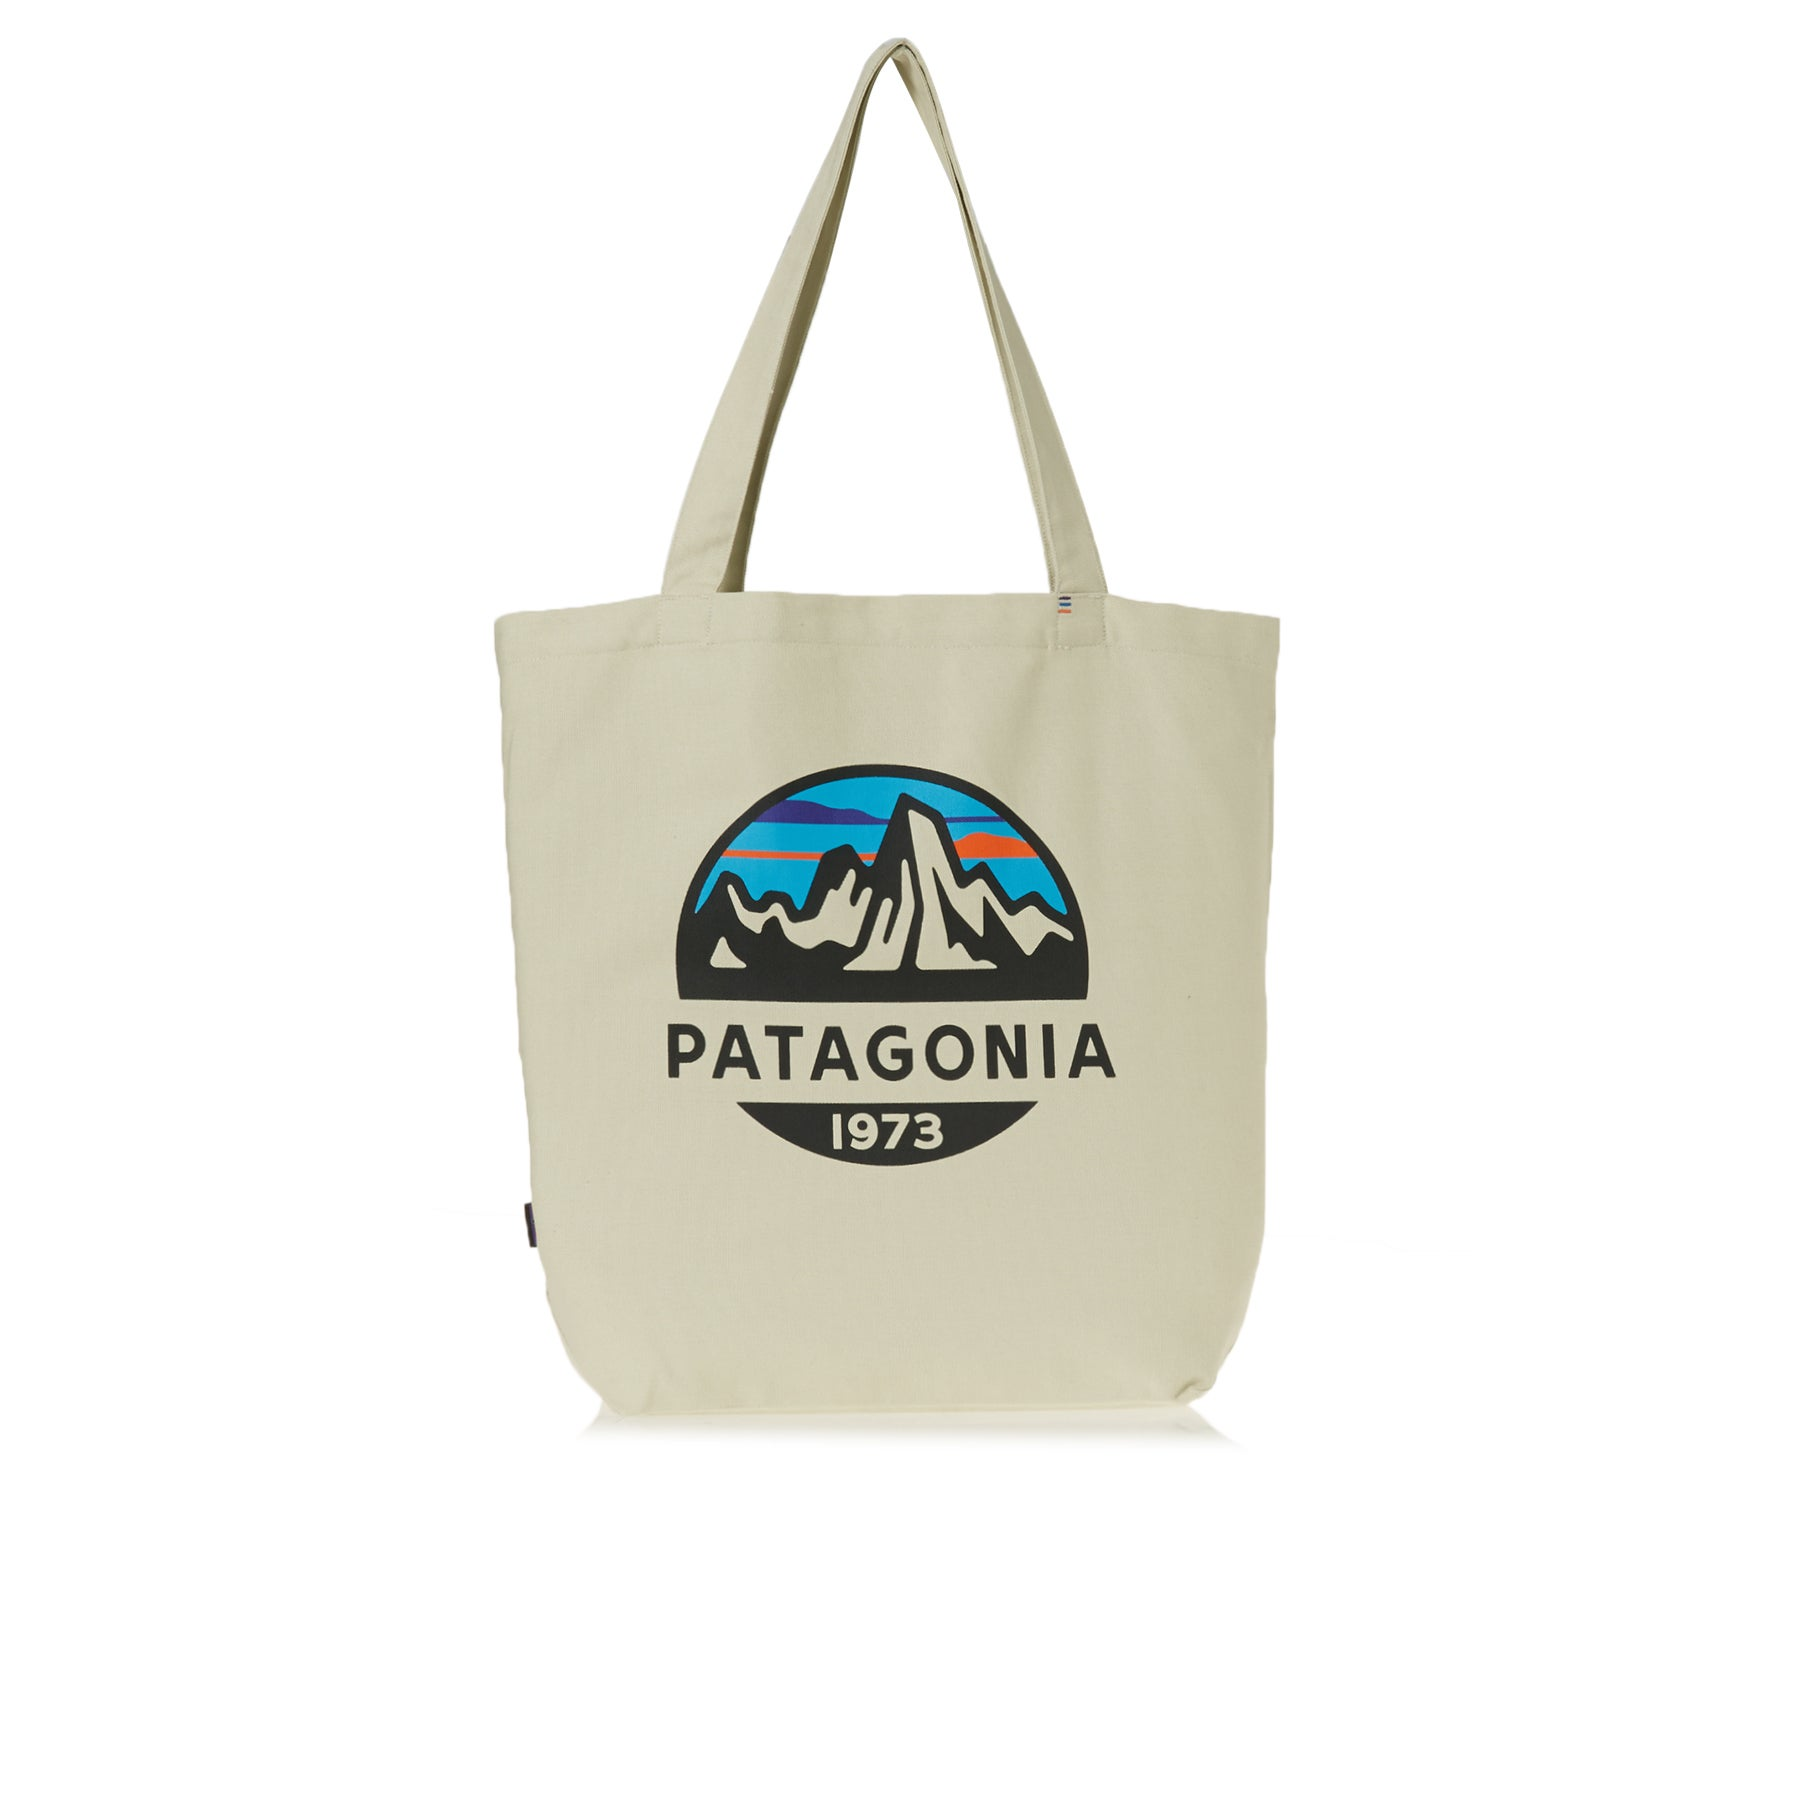 Patagonia Market Tote Shopper Bag - Fitz Roy Scope: Bleached Stone